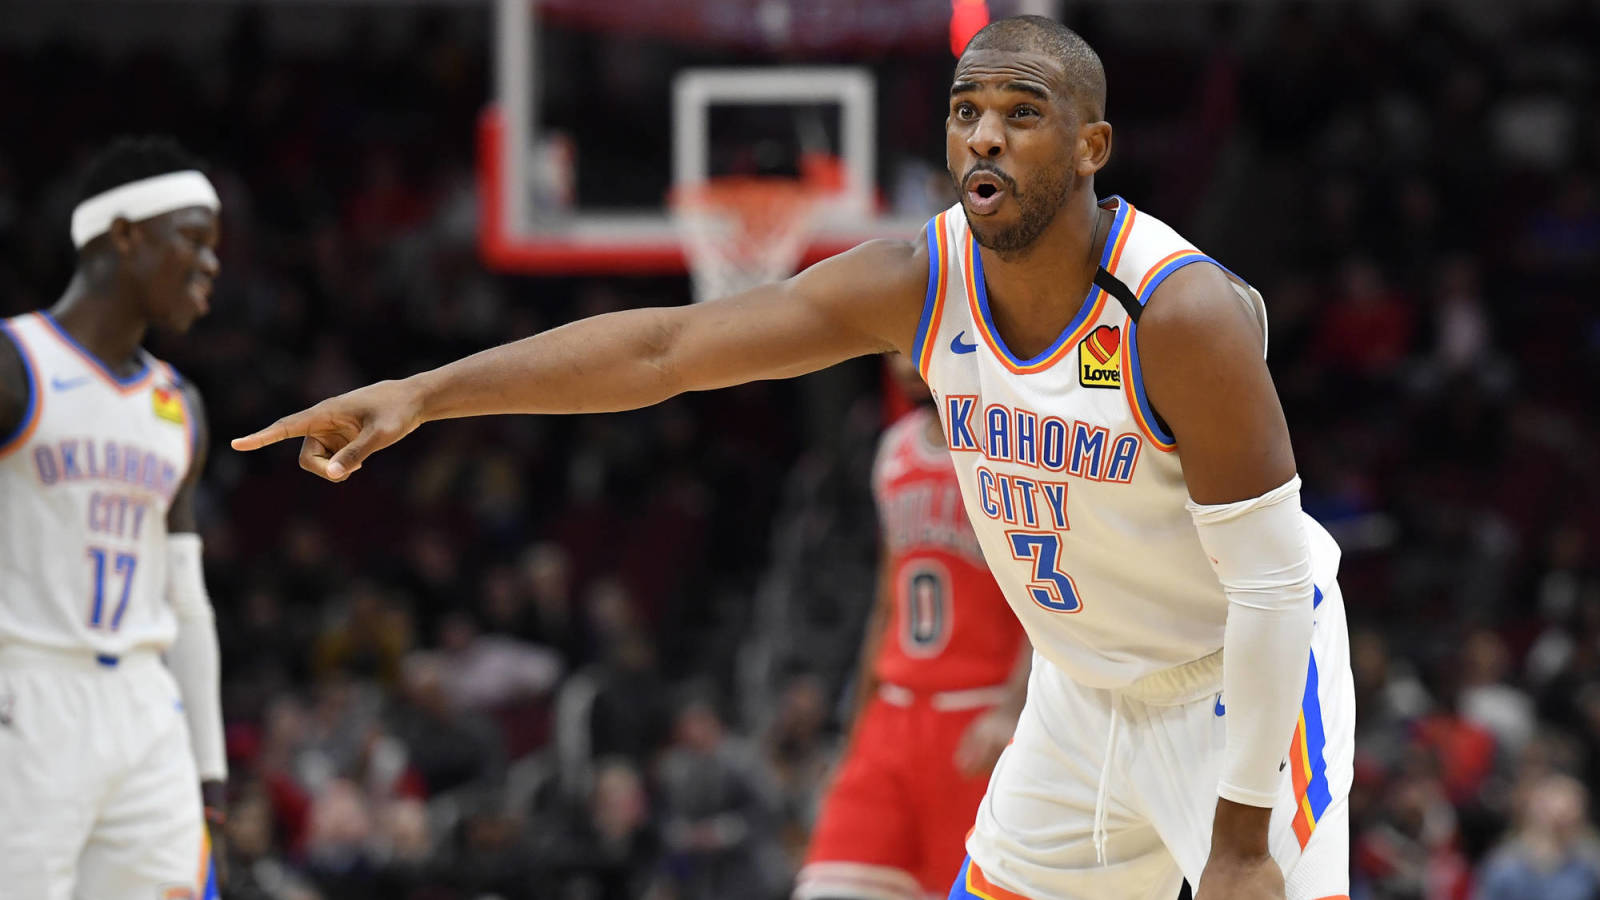 Chris Paul opens up about issues with Daryl Morey, Rockets